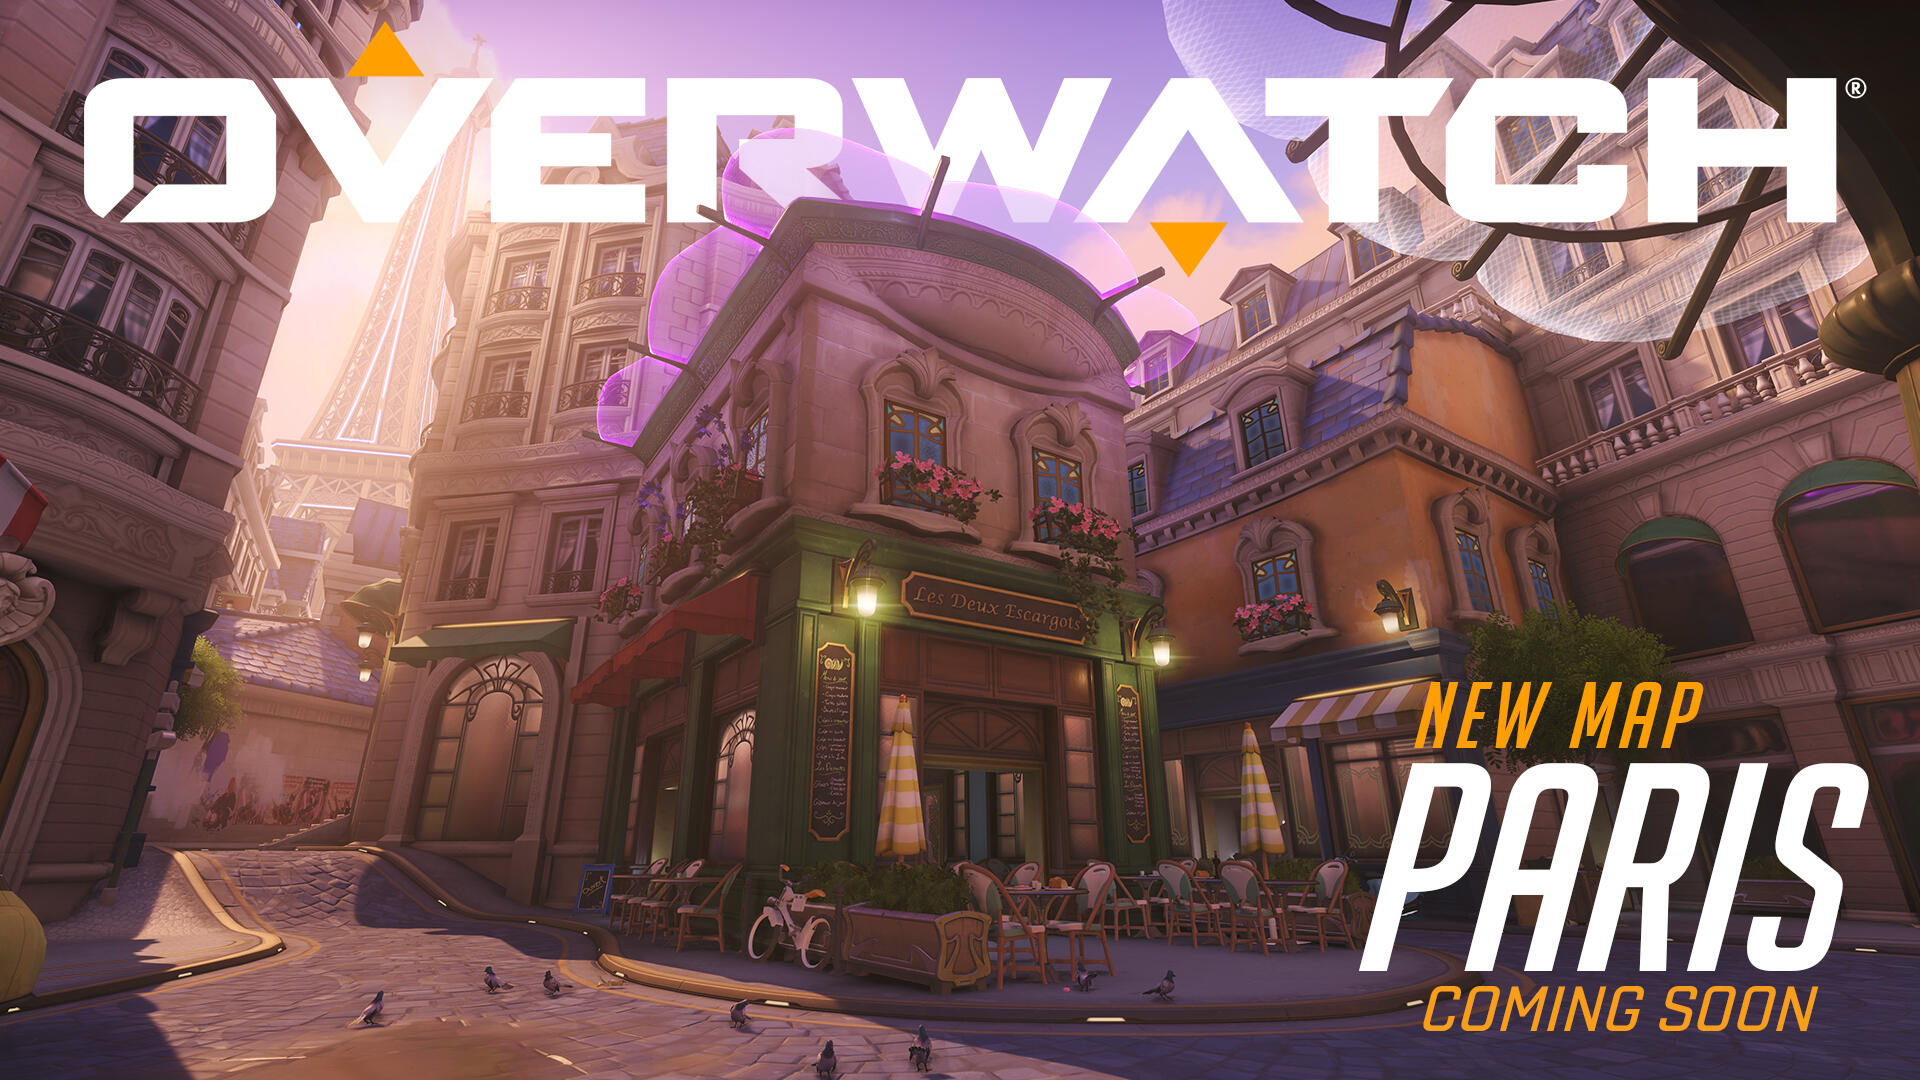 Overwatch Fans are Going Nuts for a Romantic New Paris Map That's Live on PTR